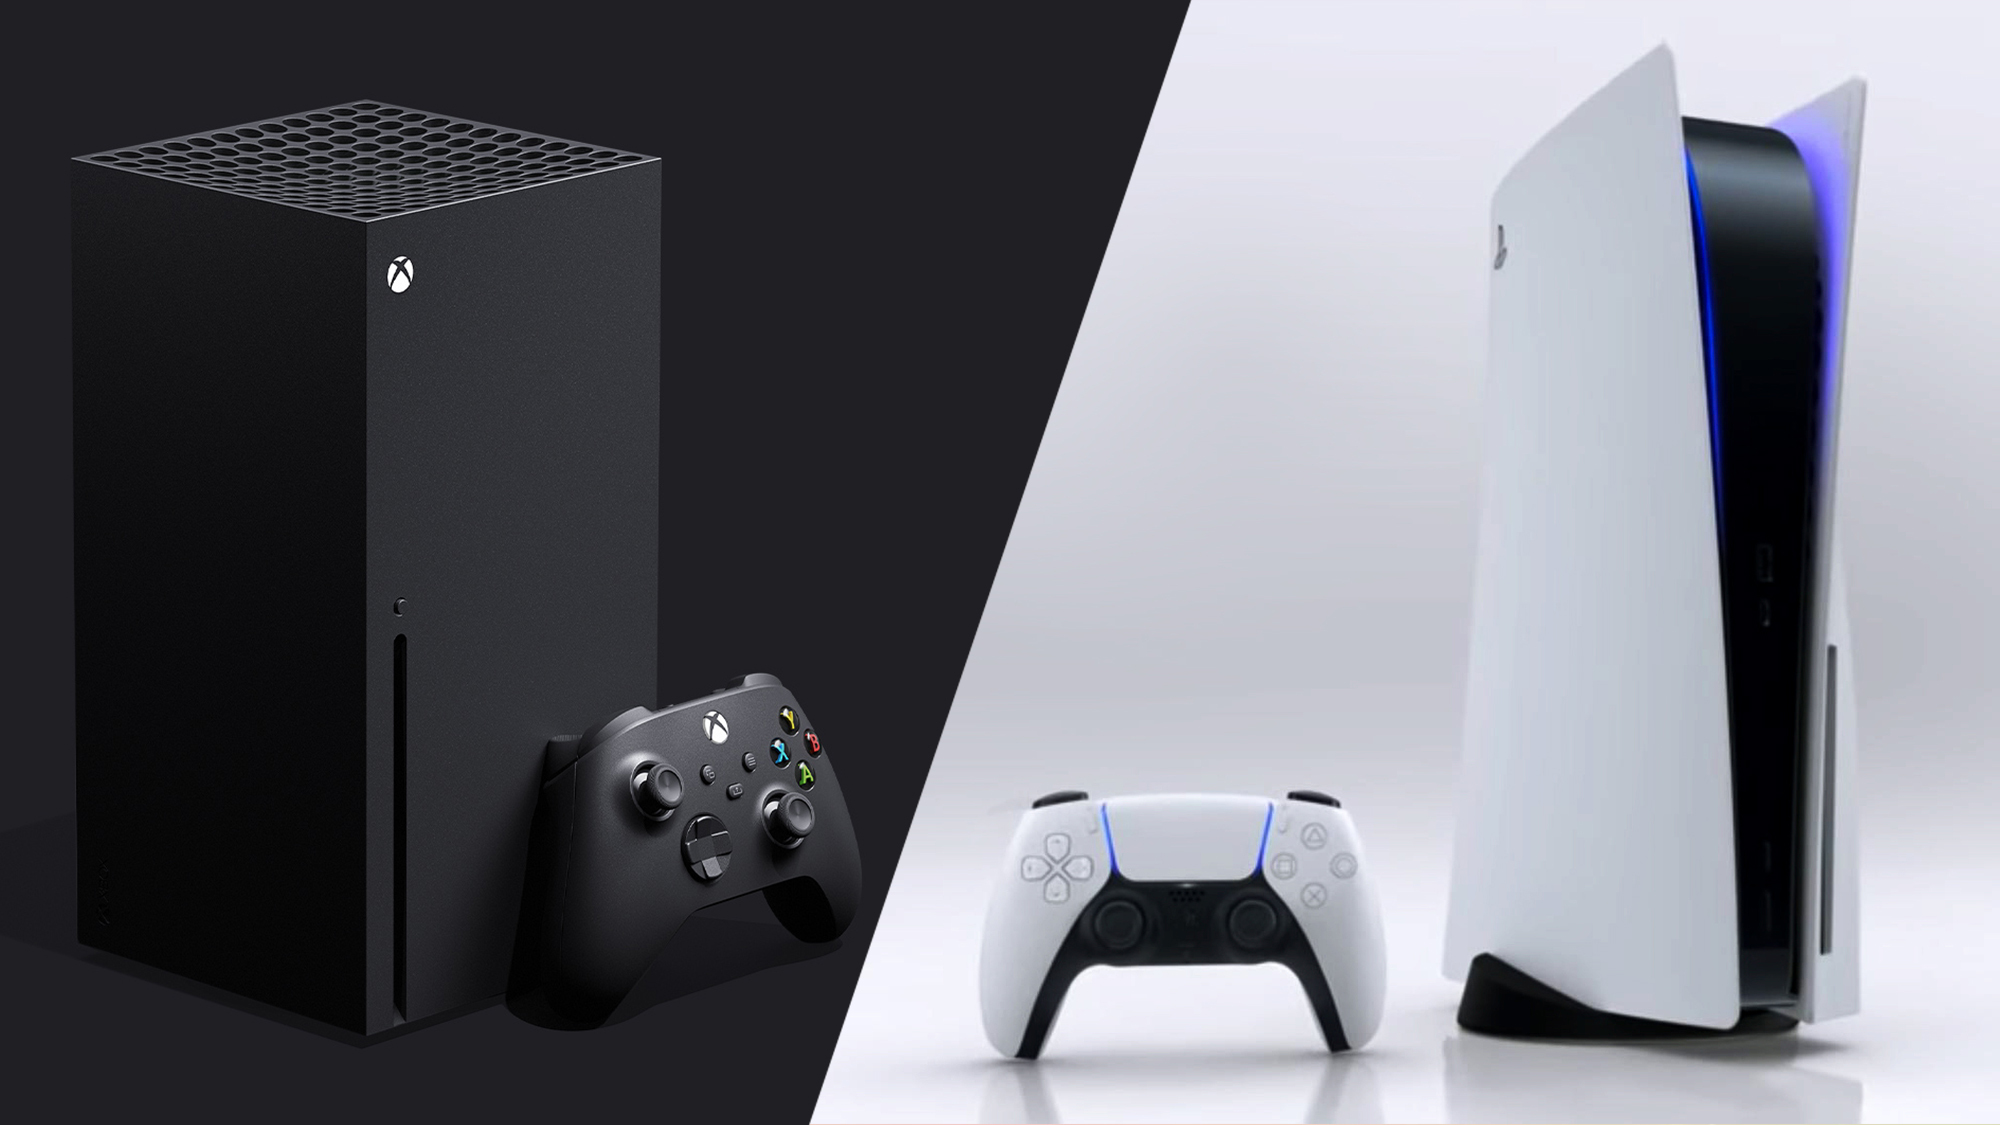 PS5 and Xbox Series X are so buggy it's ruining my next-gen excitement